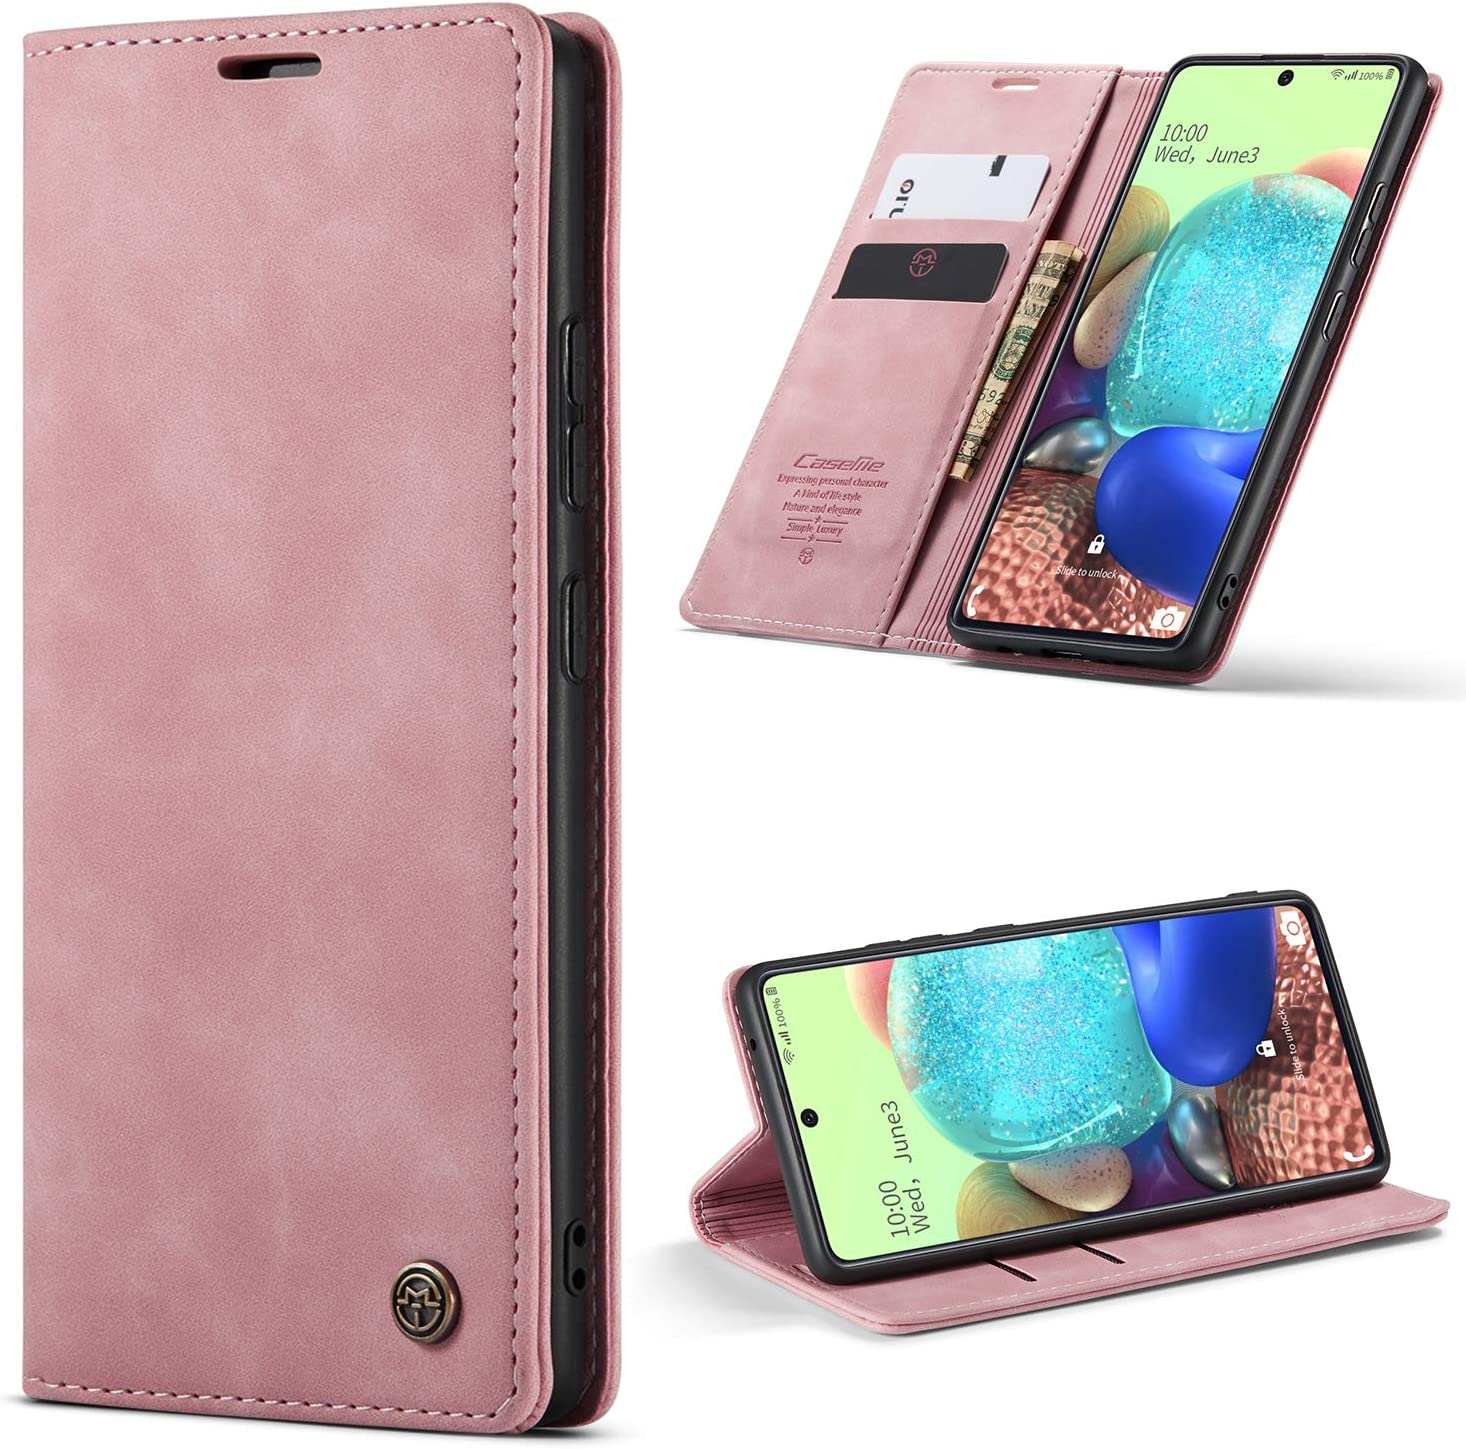 HAII Moto E 2020 Case, Flip Fold Leather Wallet Case with Credit Card Slot and Kickstand Magnetic Closure Protective Cover for Motorola Moto E 2020 (Pink)